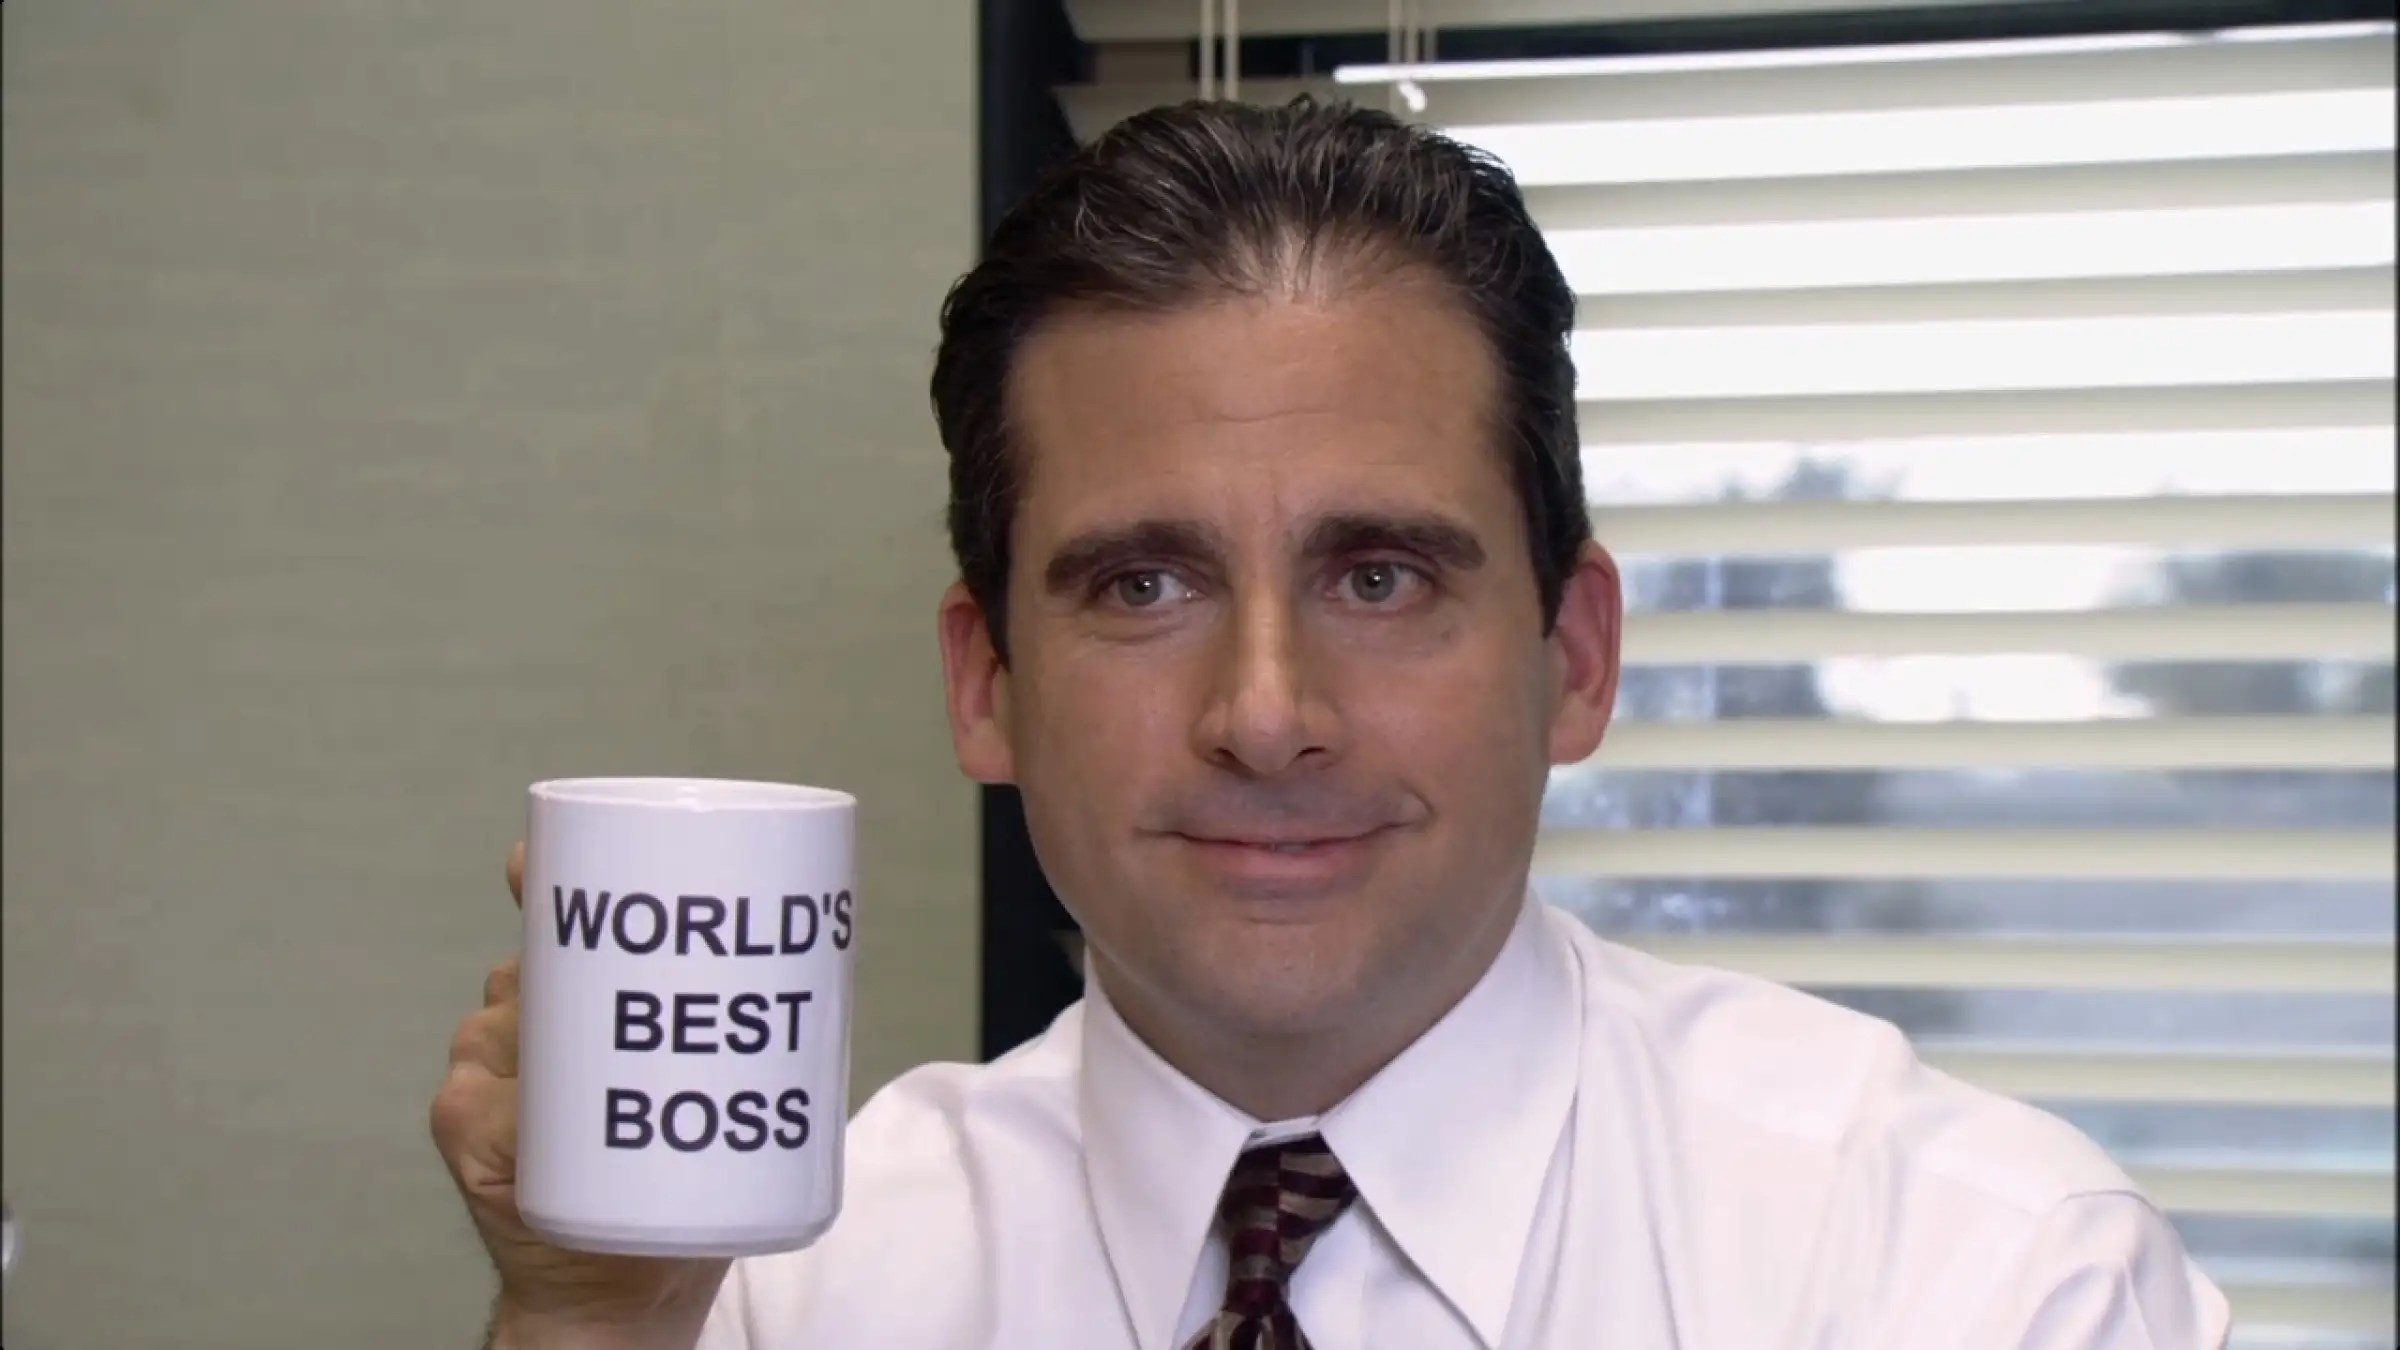 Steve Carell Wanted To Do More Seasons Of The Office